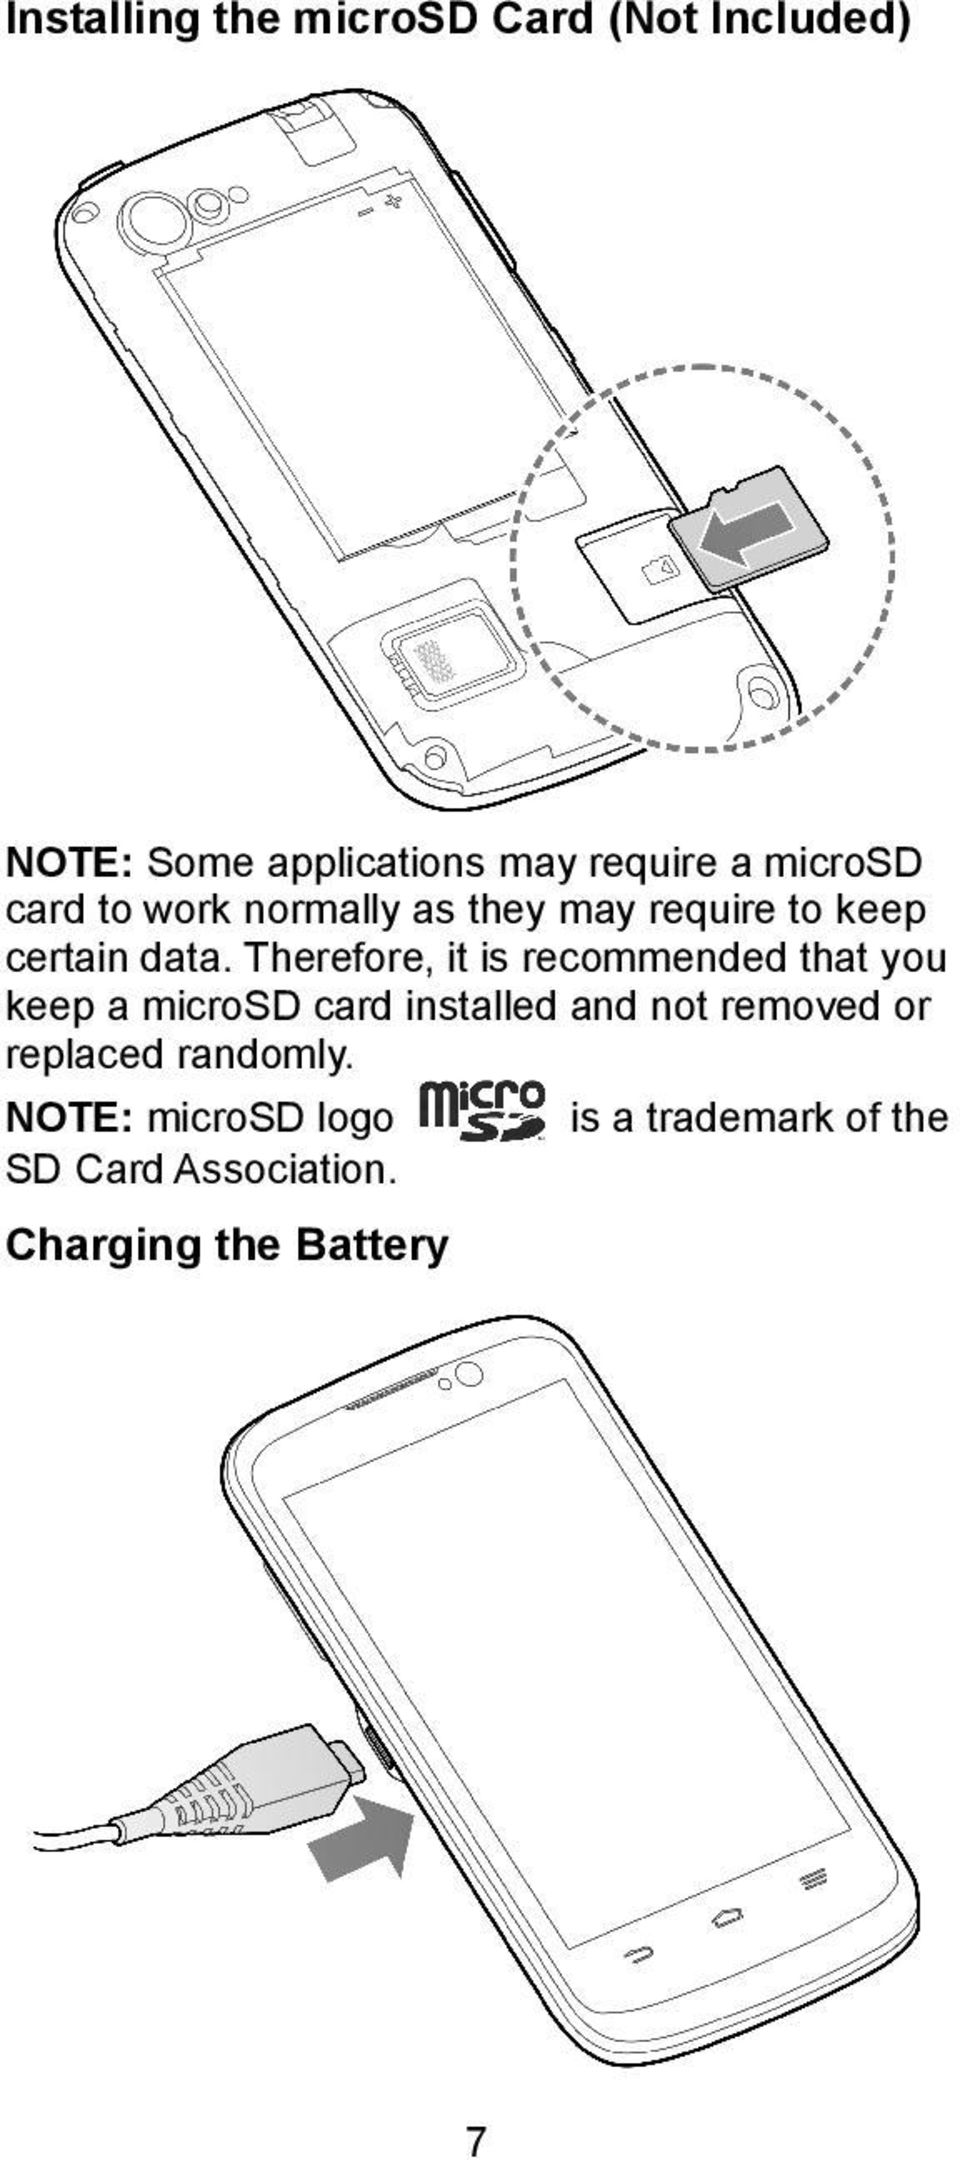 Therefore, it is recommended that you keep a microsd card installed and not removed